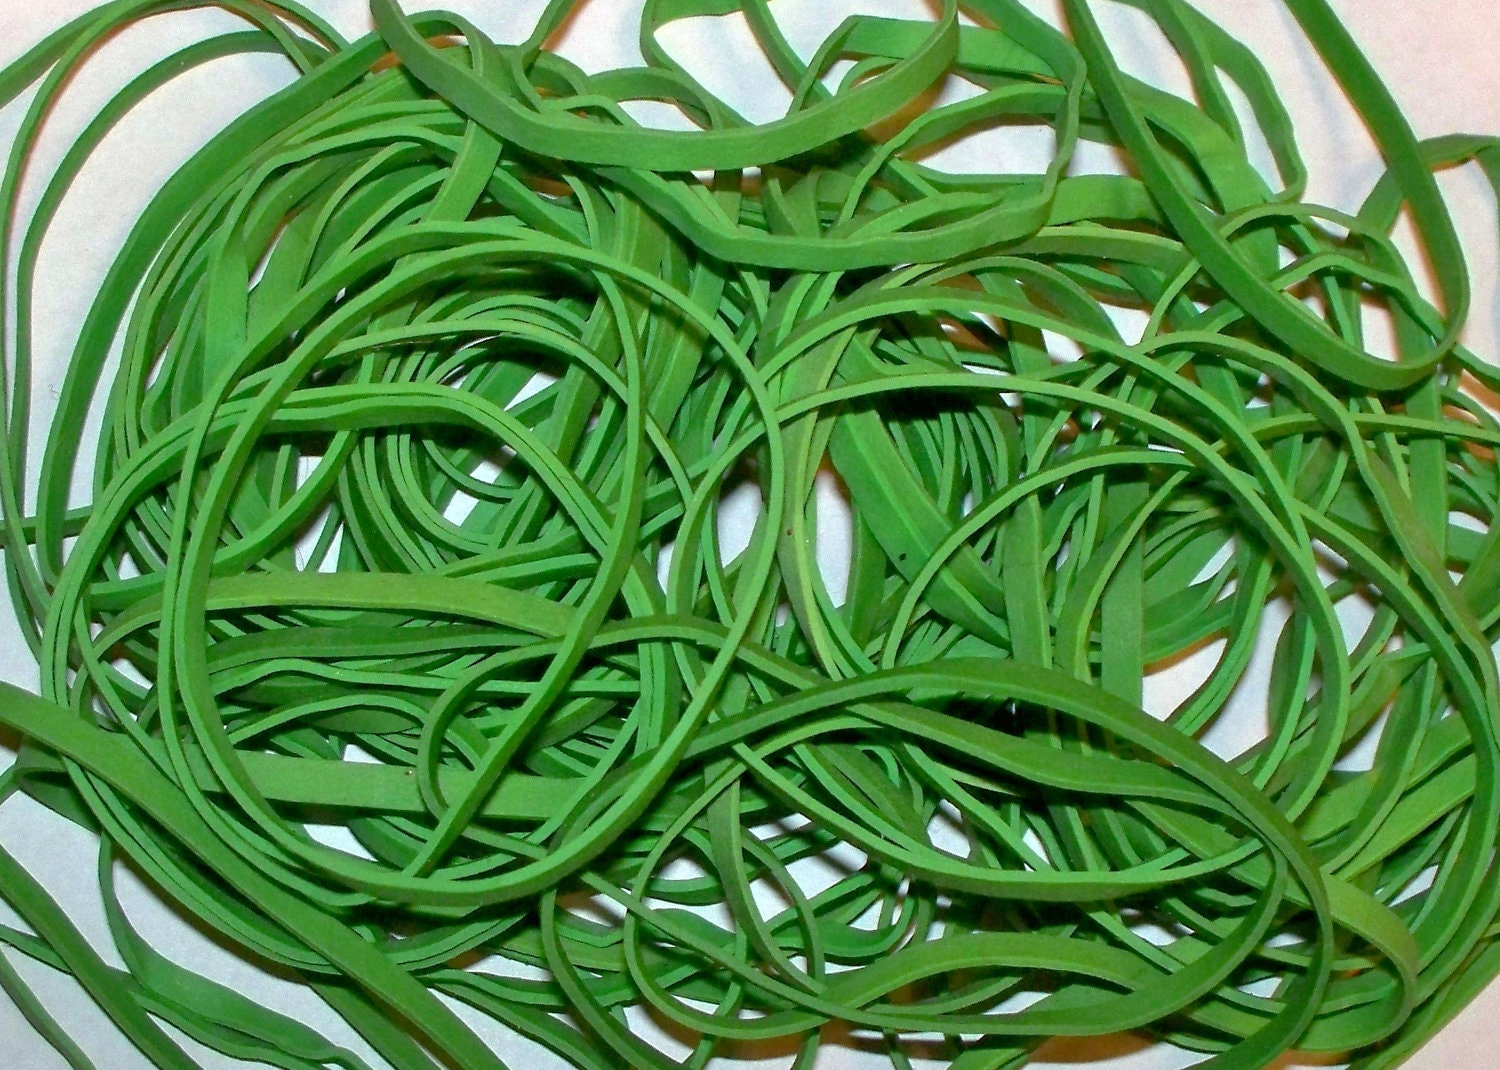 Green Rubber Bands Rubber Bands For Crafting And Office Use. Sterling Silver Bands. Anklets For Women. White Gold Wedding Bands. Painted Ceiling Medallion. Long Pendant Necklace. Moissaniteco Sapphire. Ethiopian Opal Bracelet. Heart Shaped Emerald